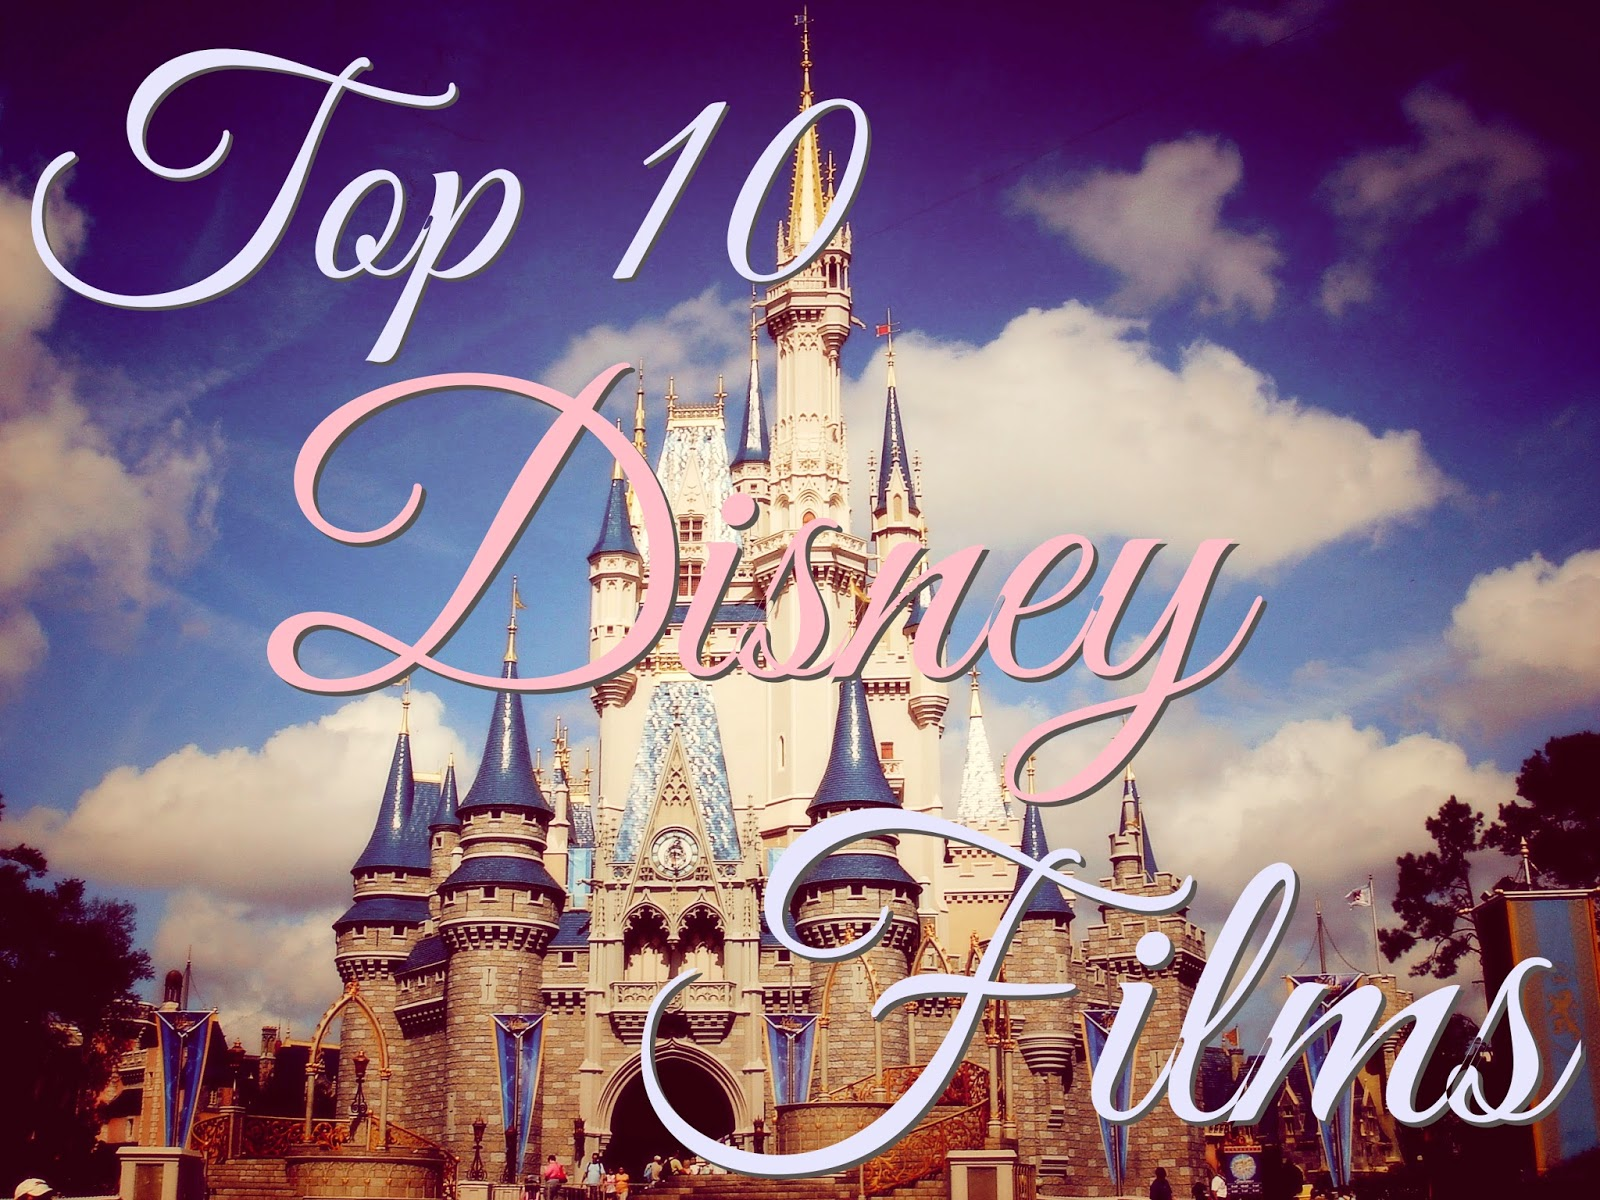 Top 10 Disney Movies